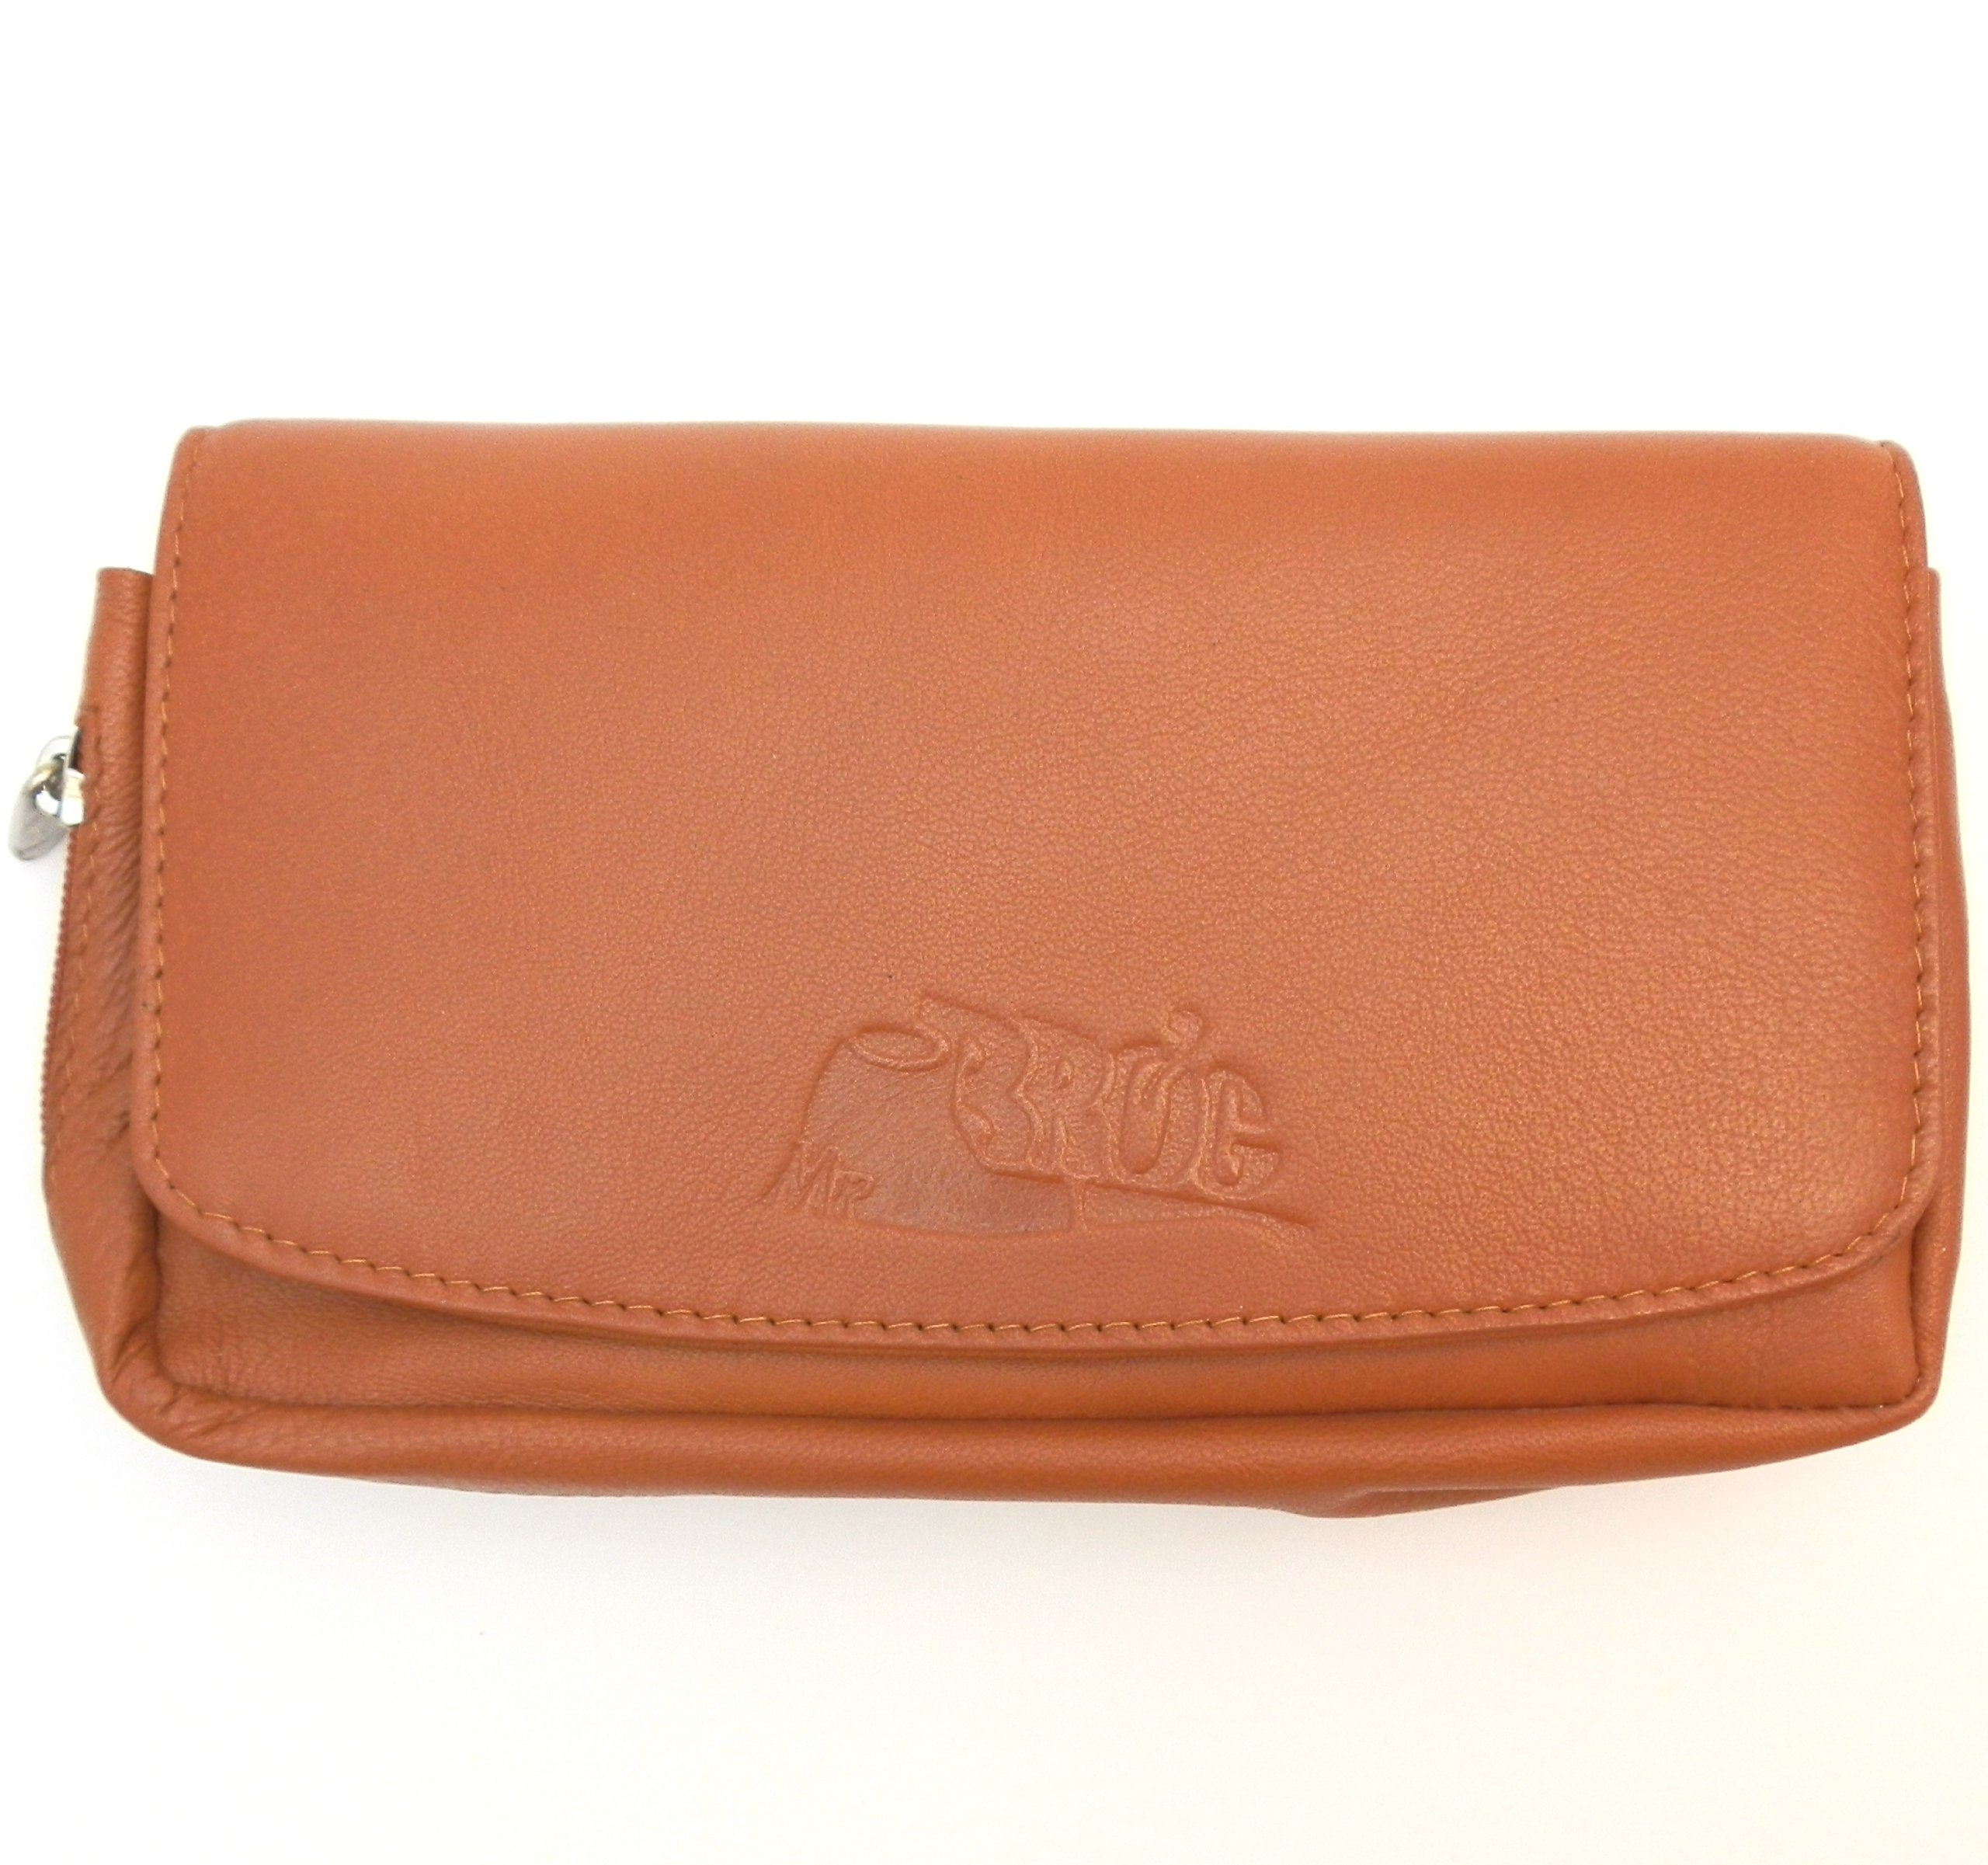 Sheep Napa Leather Tobacco Pipe Combo Pouch with Rubber Lining to Preserve Freshness